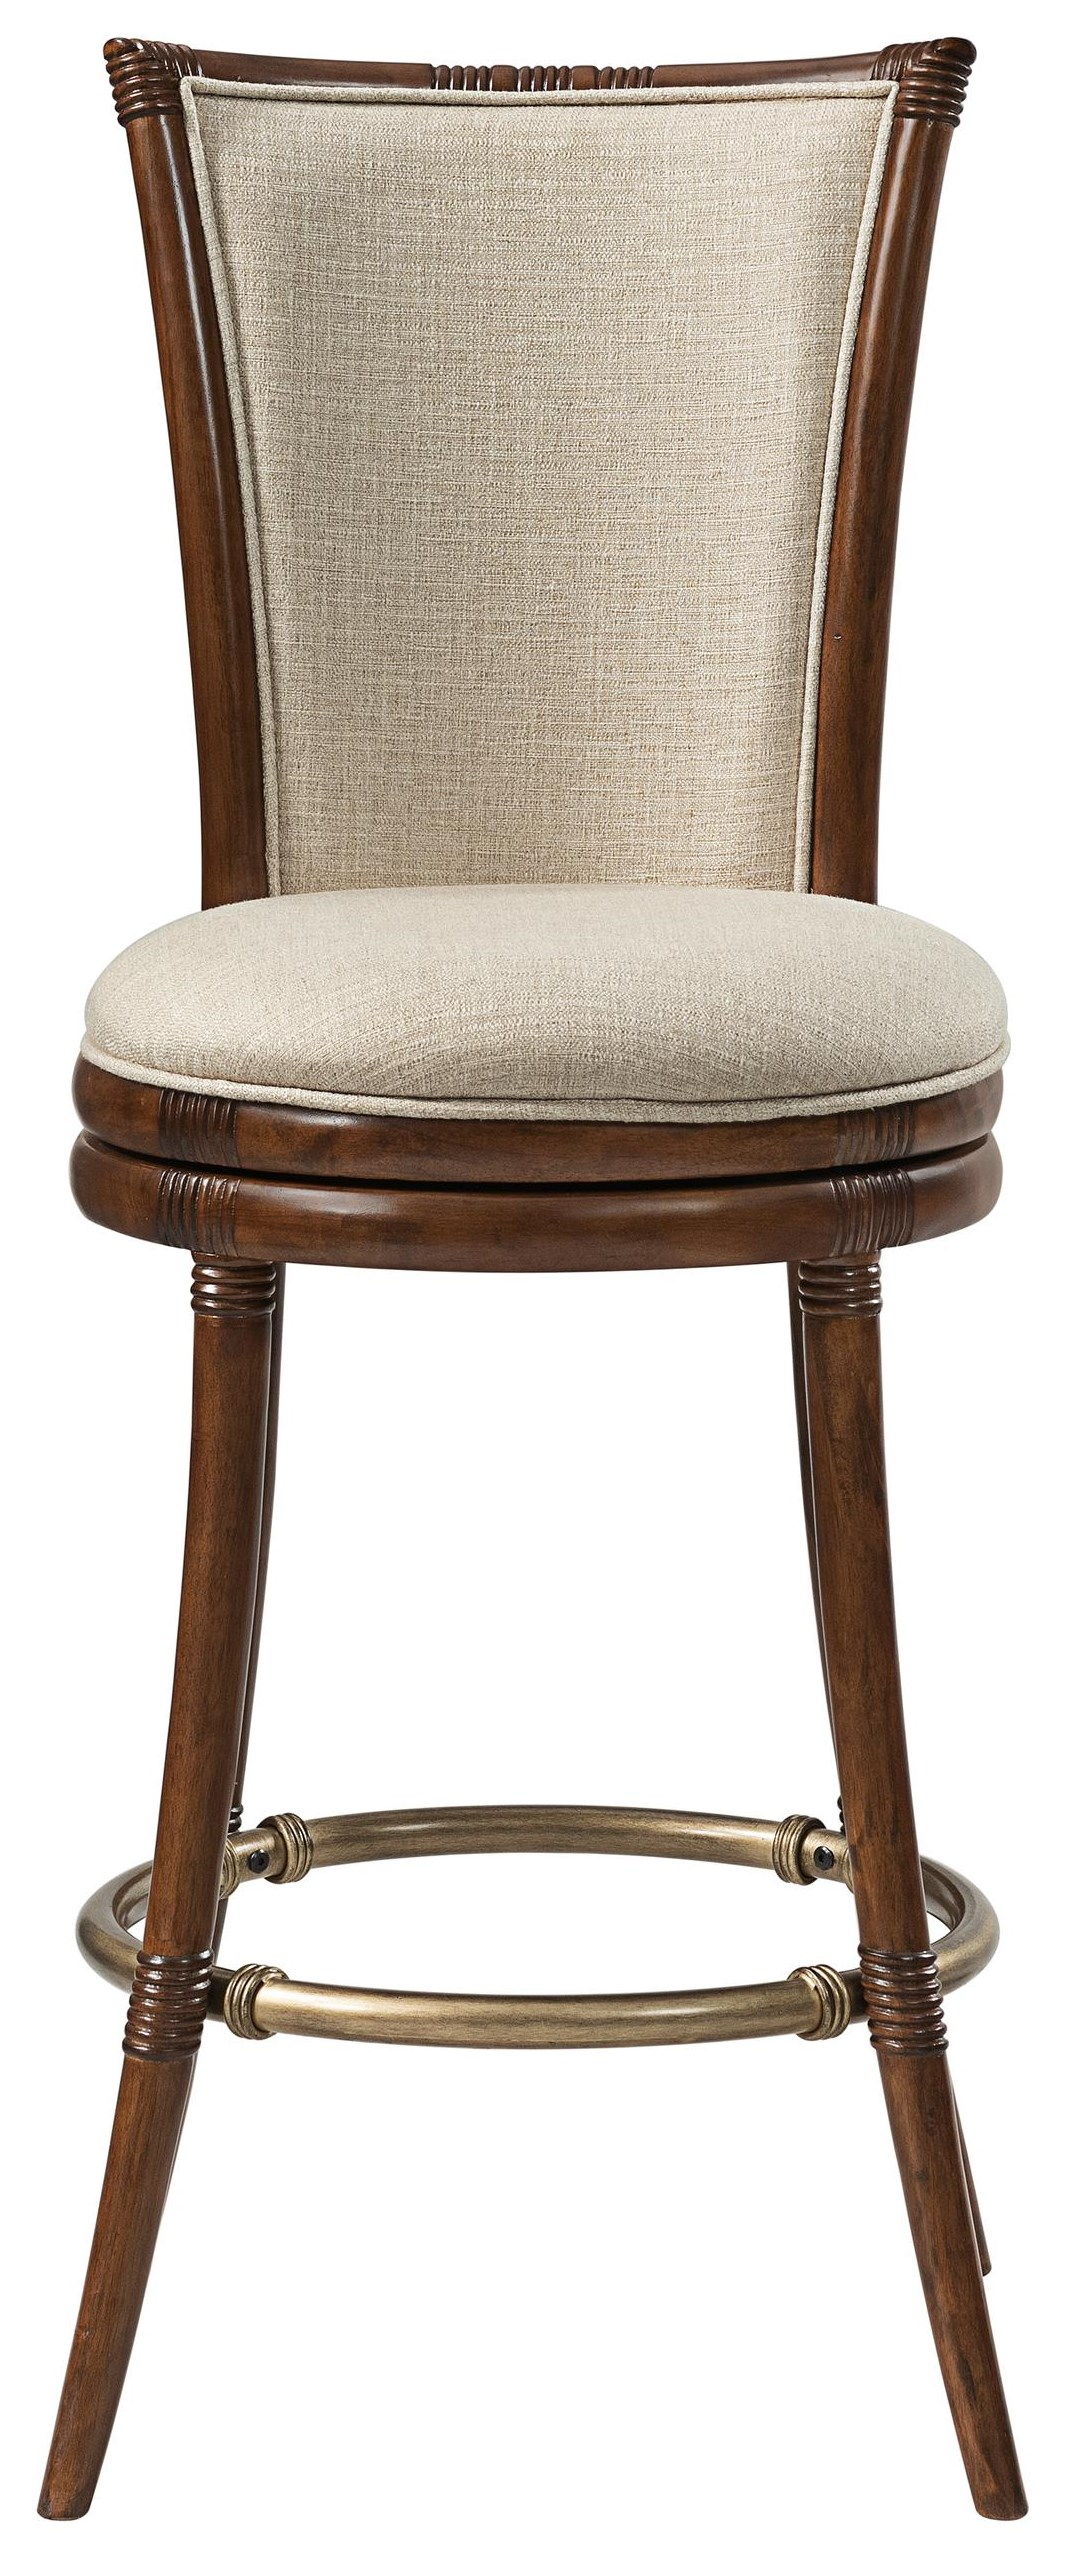 Tropical Breeze Bar Stool by Stillwater Furniture at Baer's Furniture